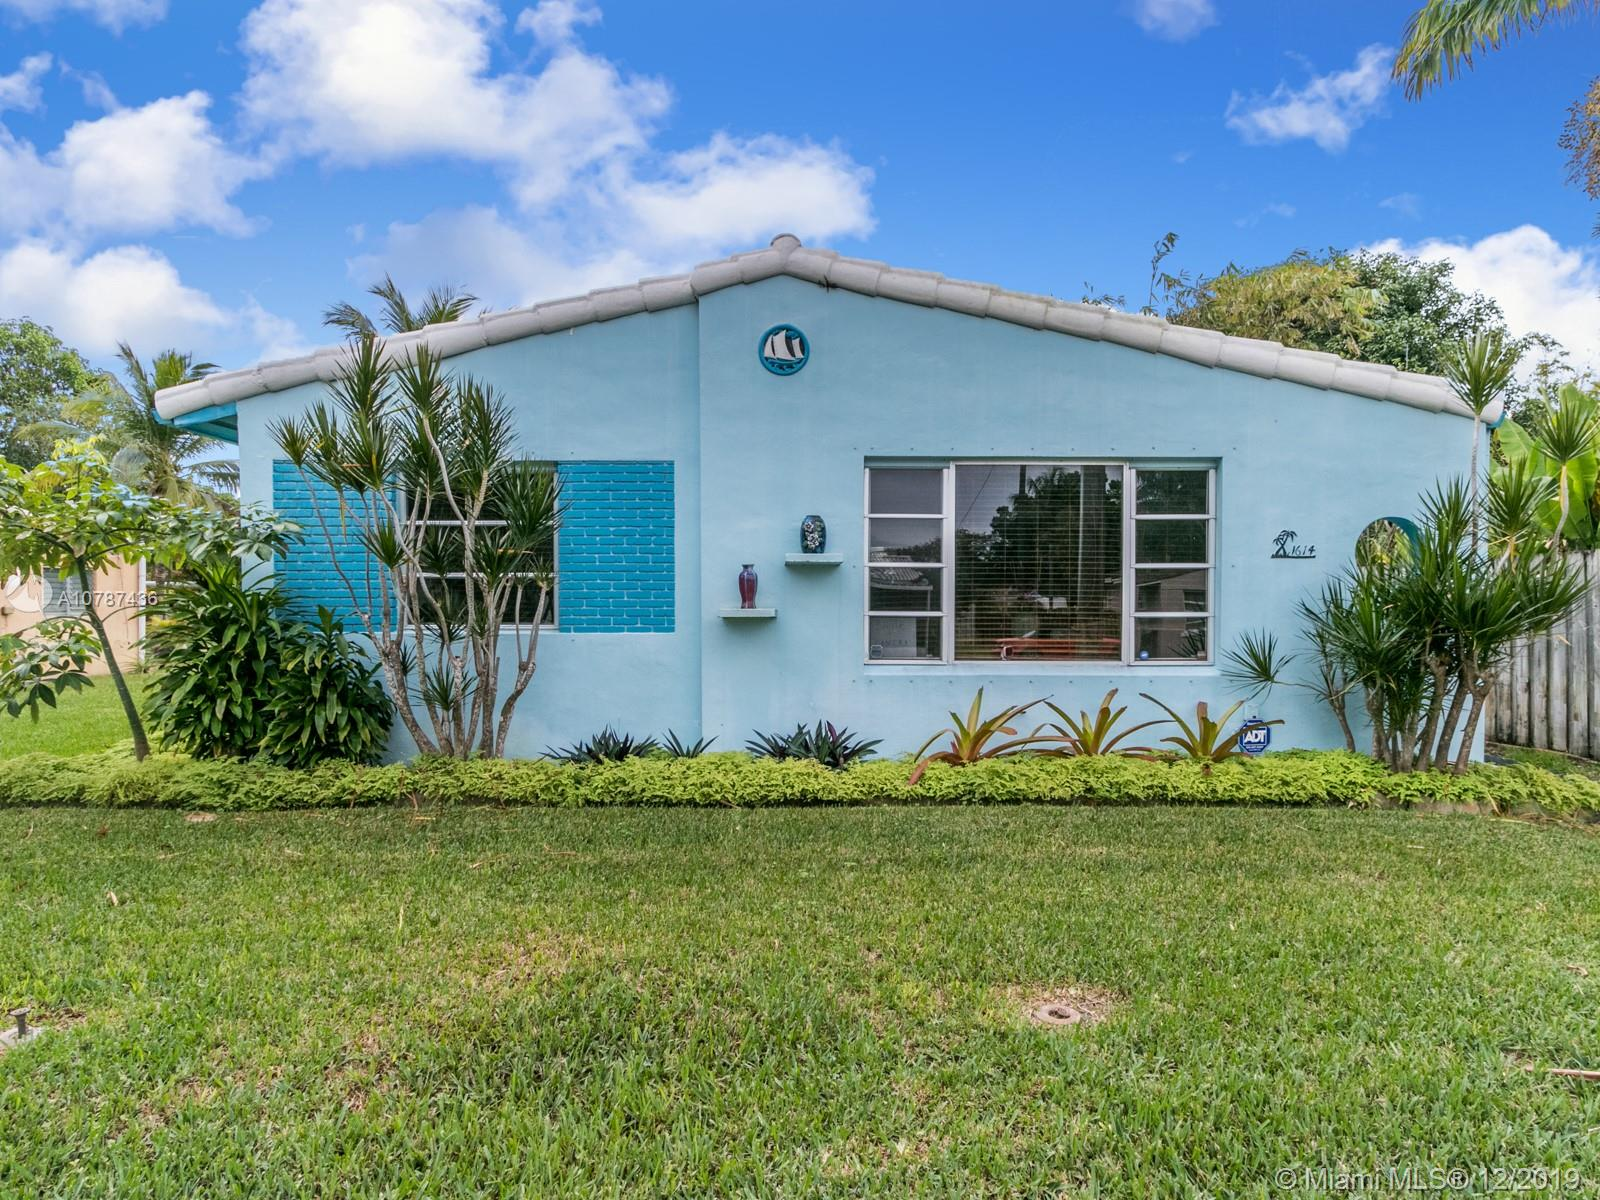 Details for 1614 Mayo St, Hollywood, FL 33020